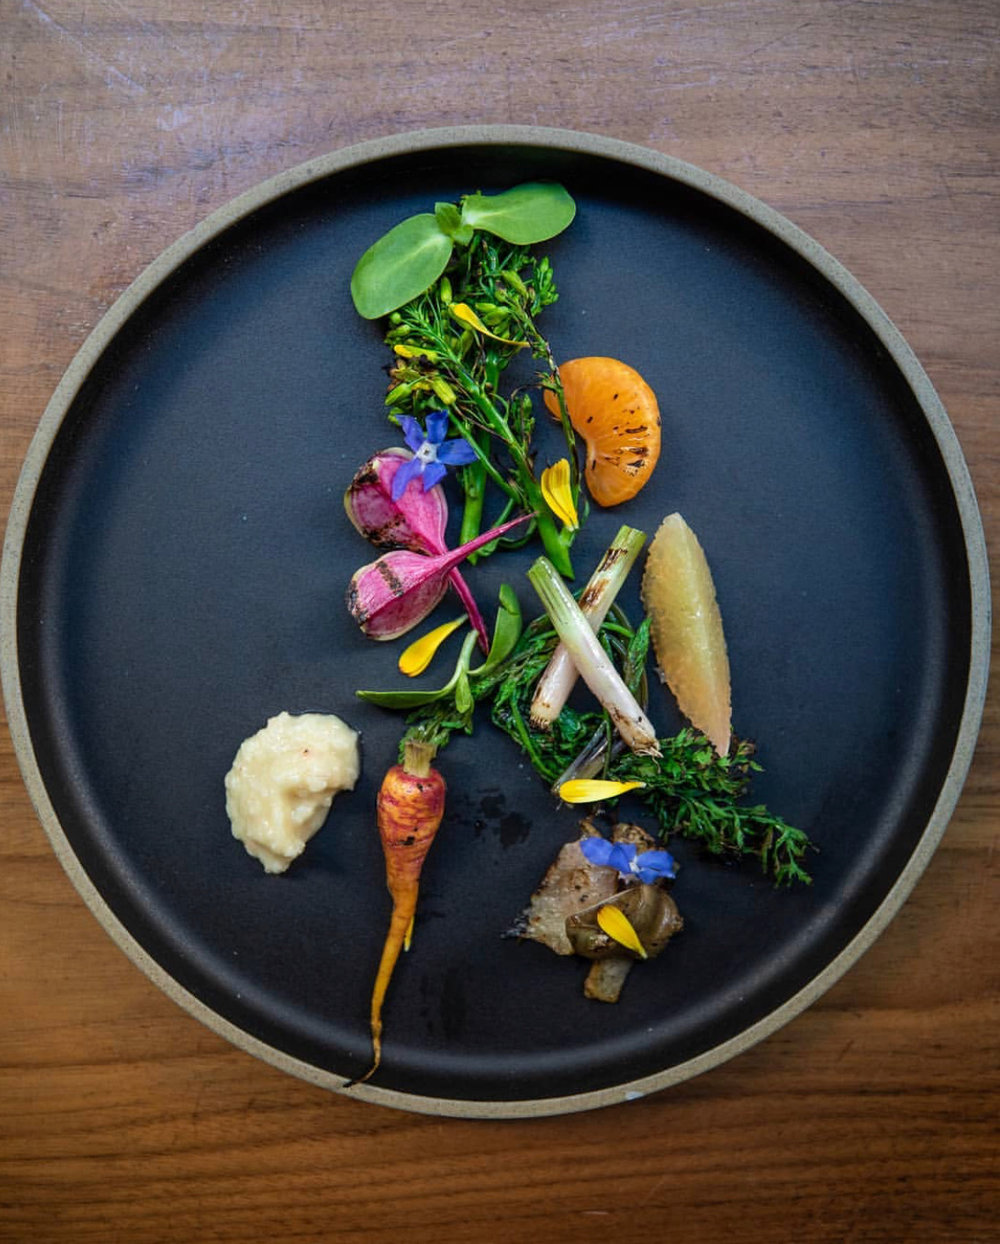 Chef Josef Centeno creation featuring our produce at Orsa & Winston